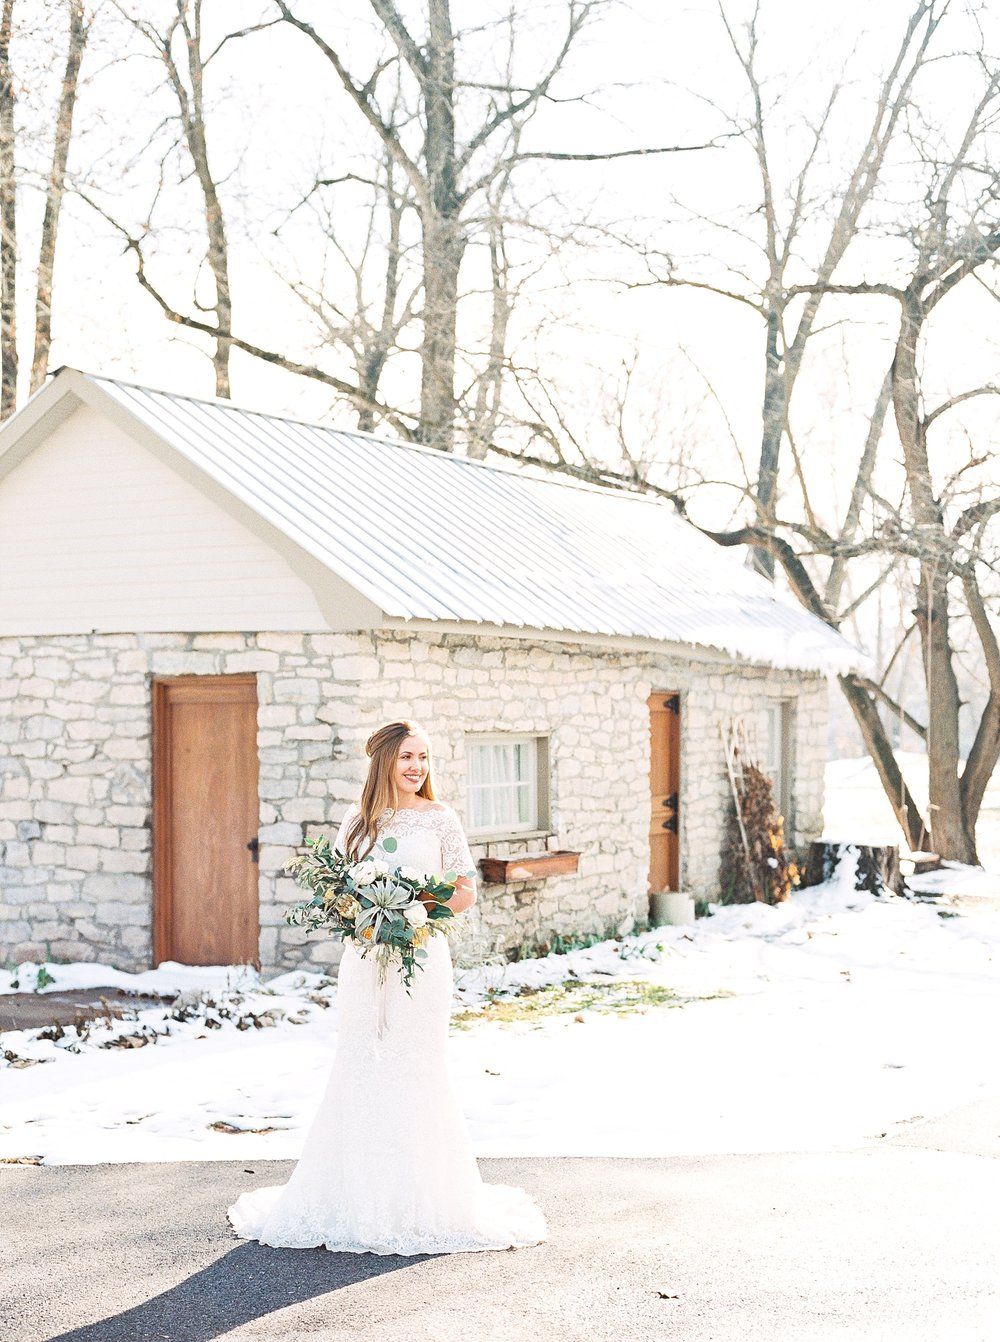 Snowy Winter Wedding at Wildcliff Events Lake With Earthy Jewel Tones and Organic Refined Style by Kelsi Kliethermes Photography Kansas City Missouri Wedding Photographer_0140.jpg